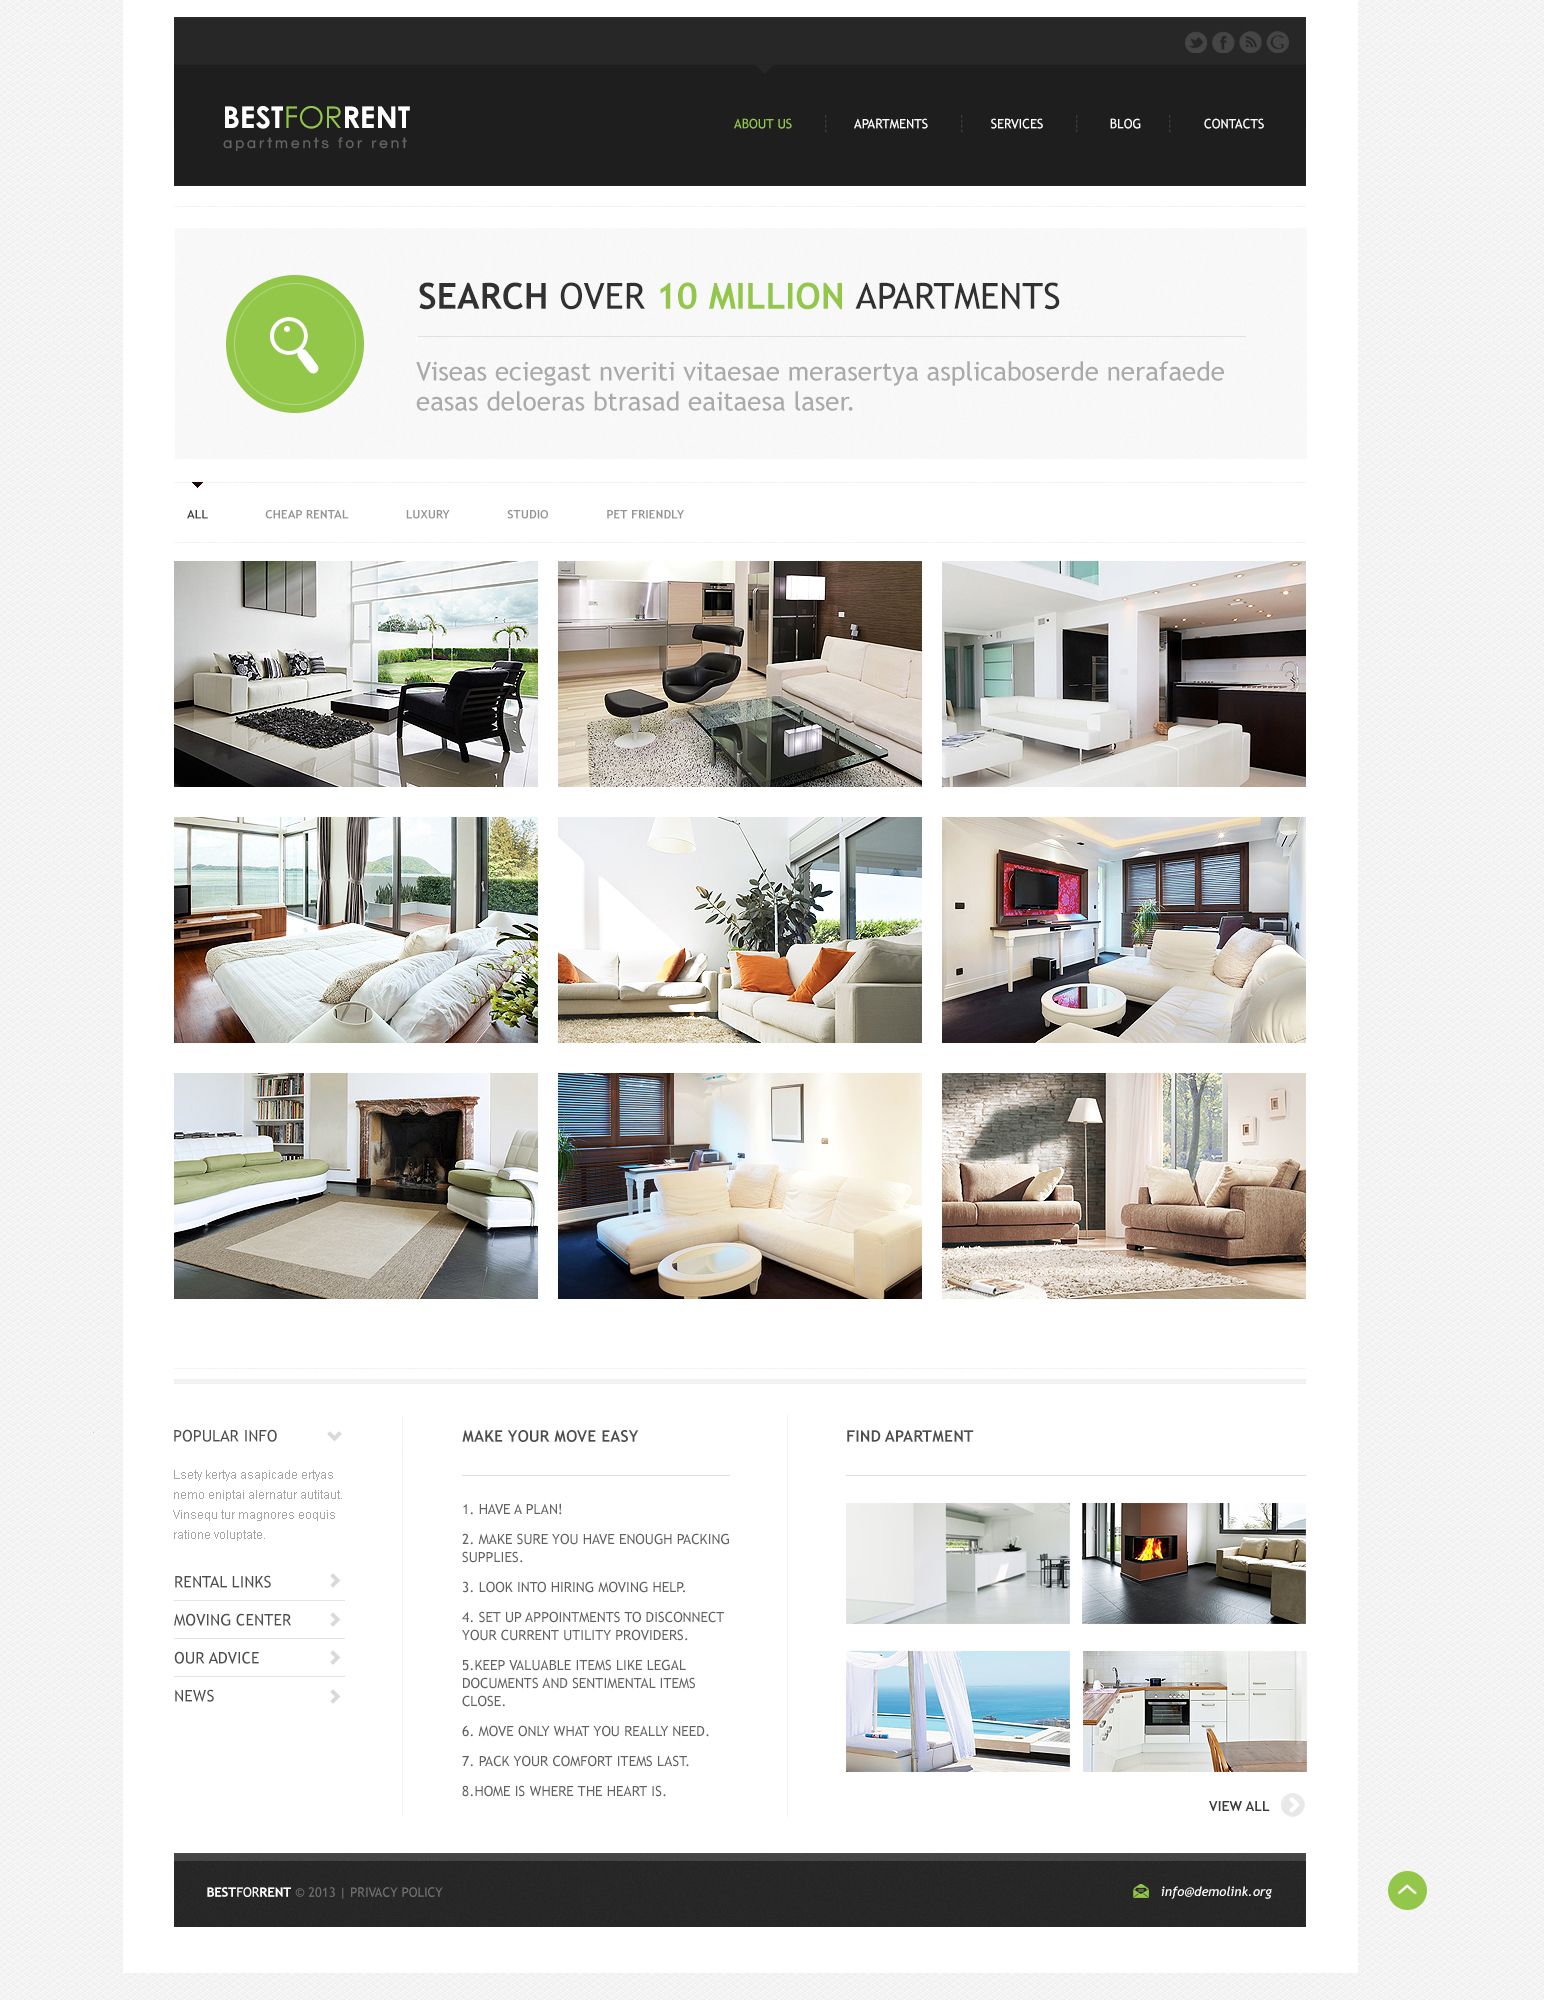 Apartments for Rent Joomla Template 46371 – House for Rent Template